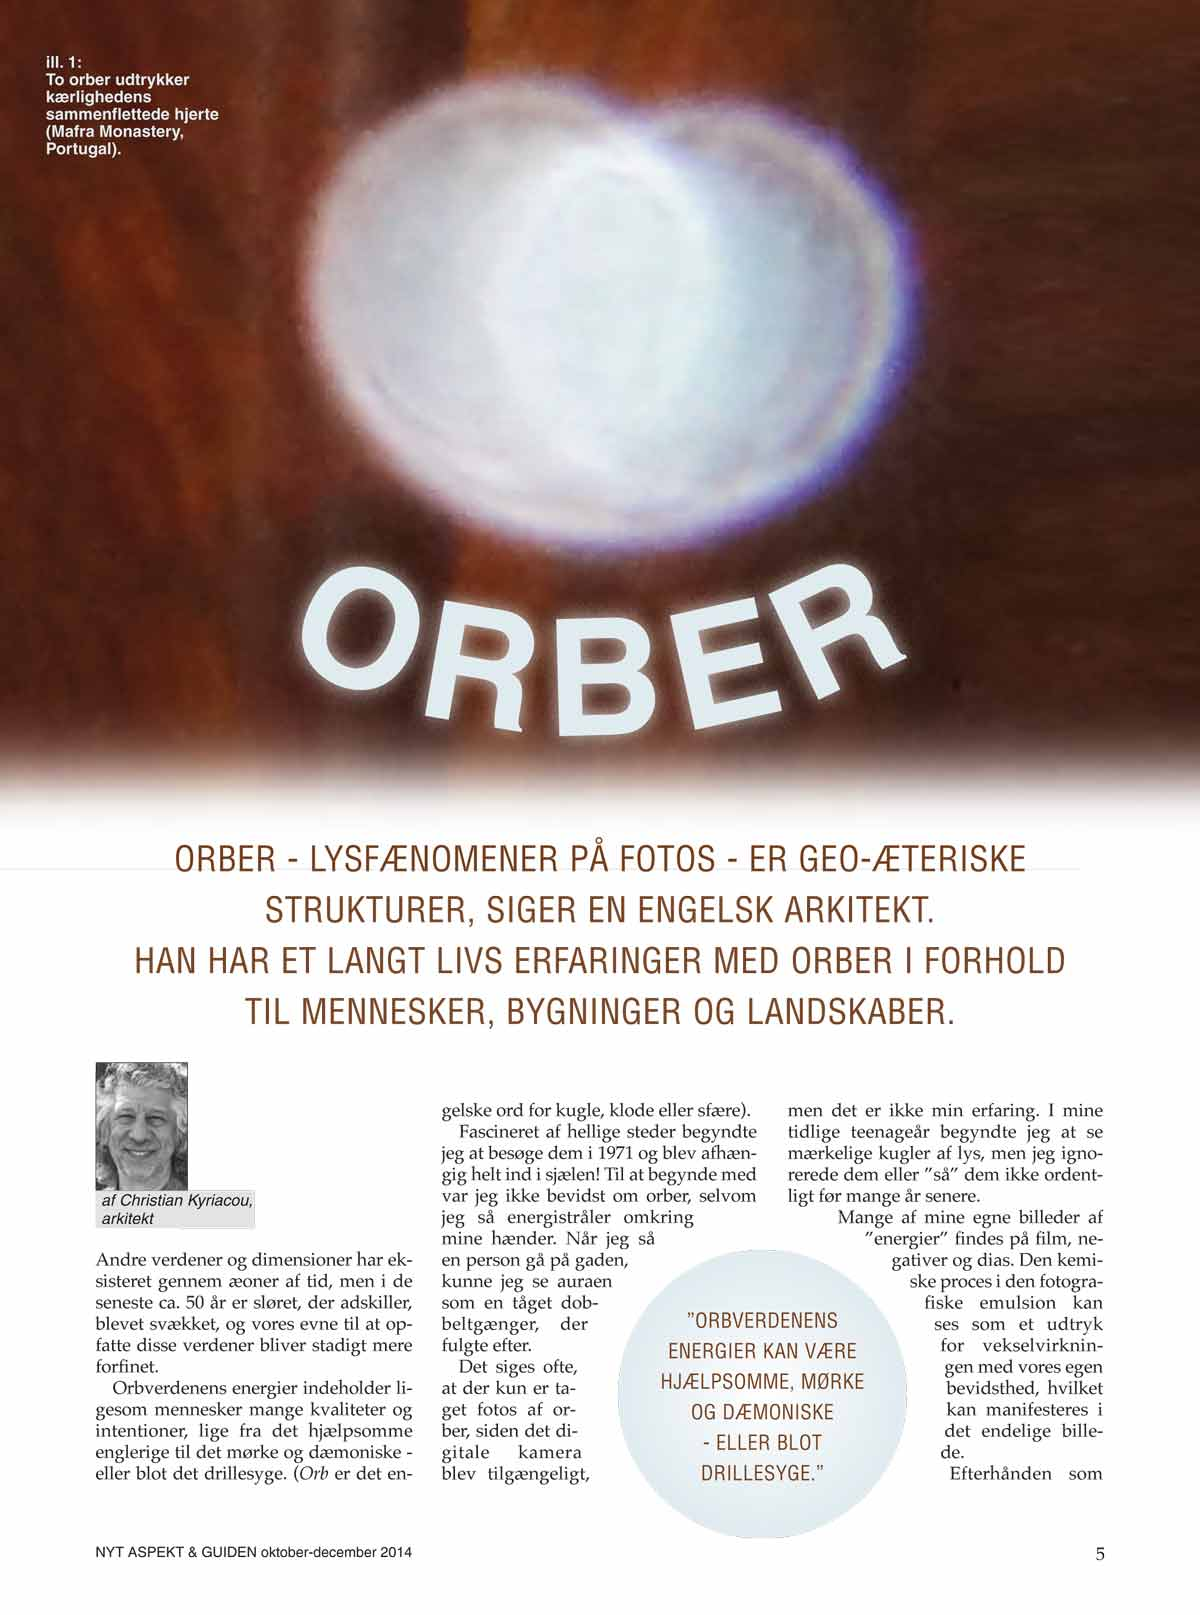 Orbs-Danish-Article-2014.jpg